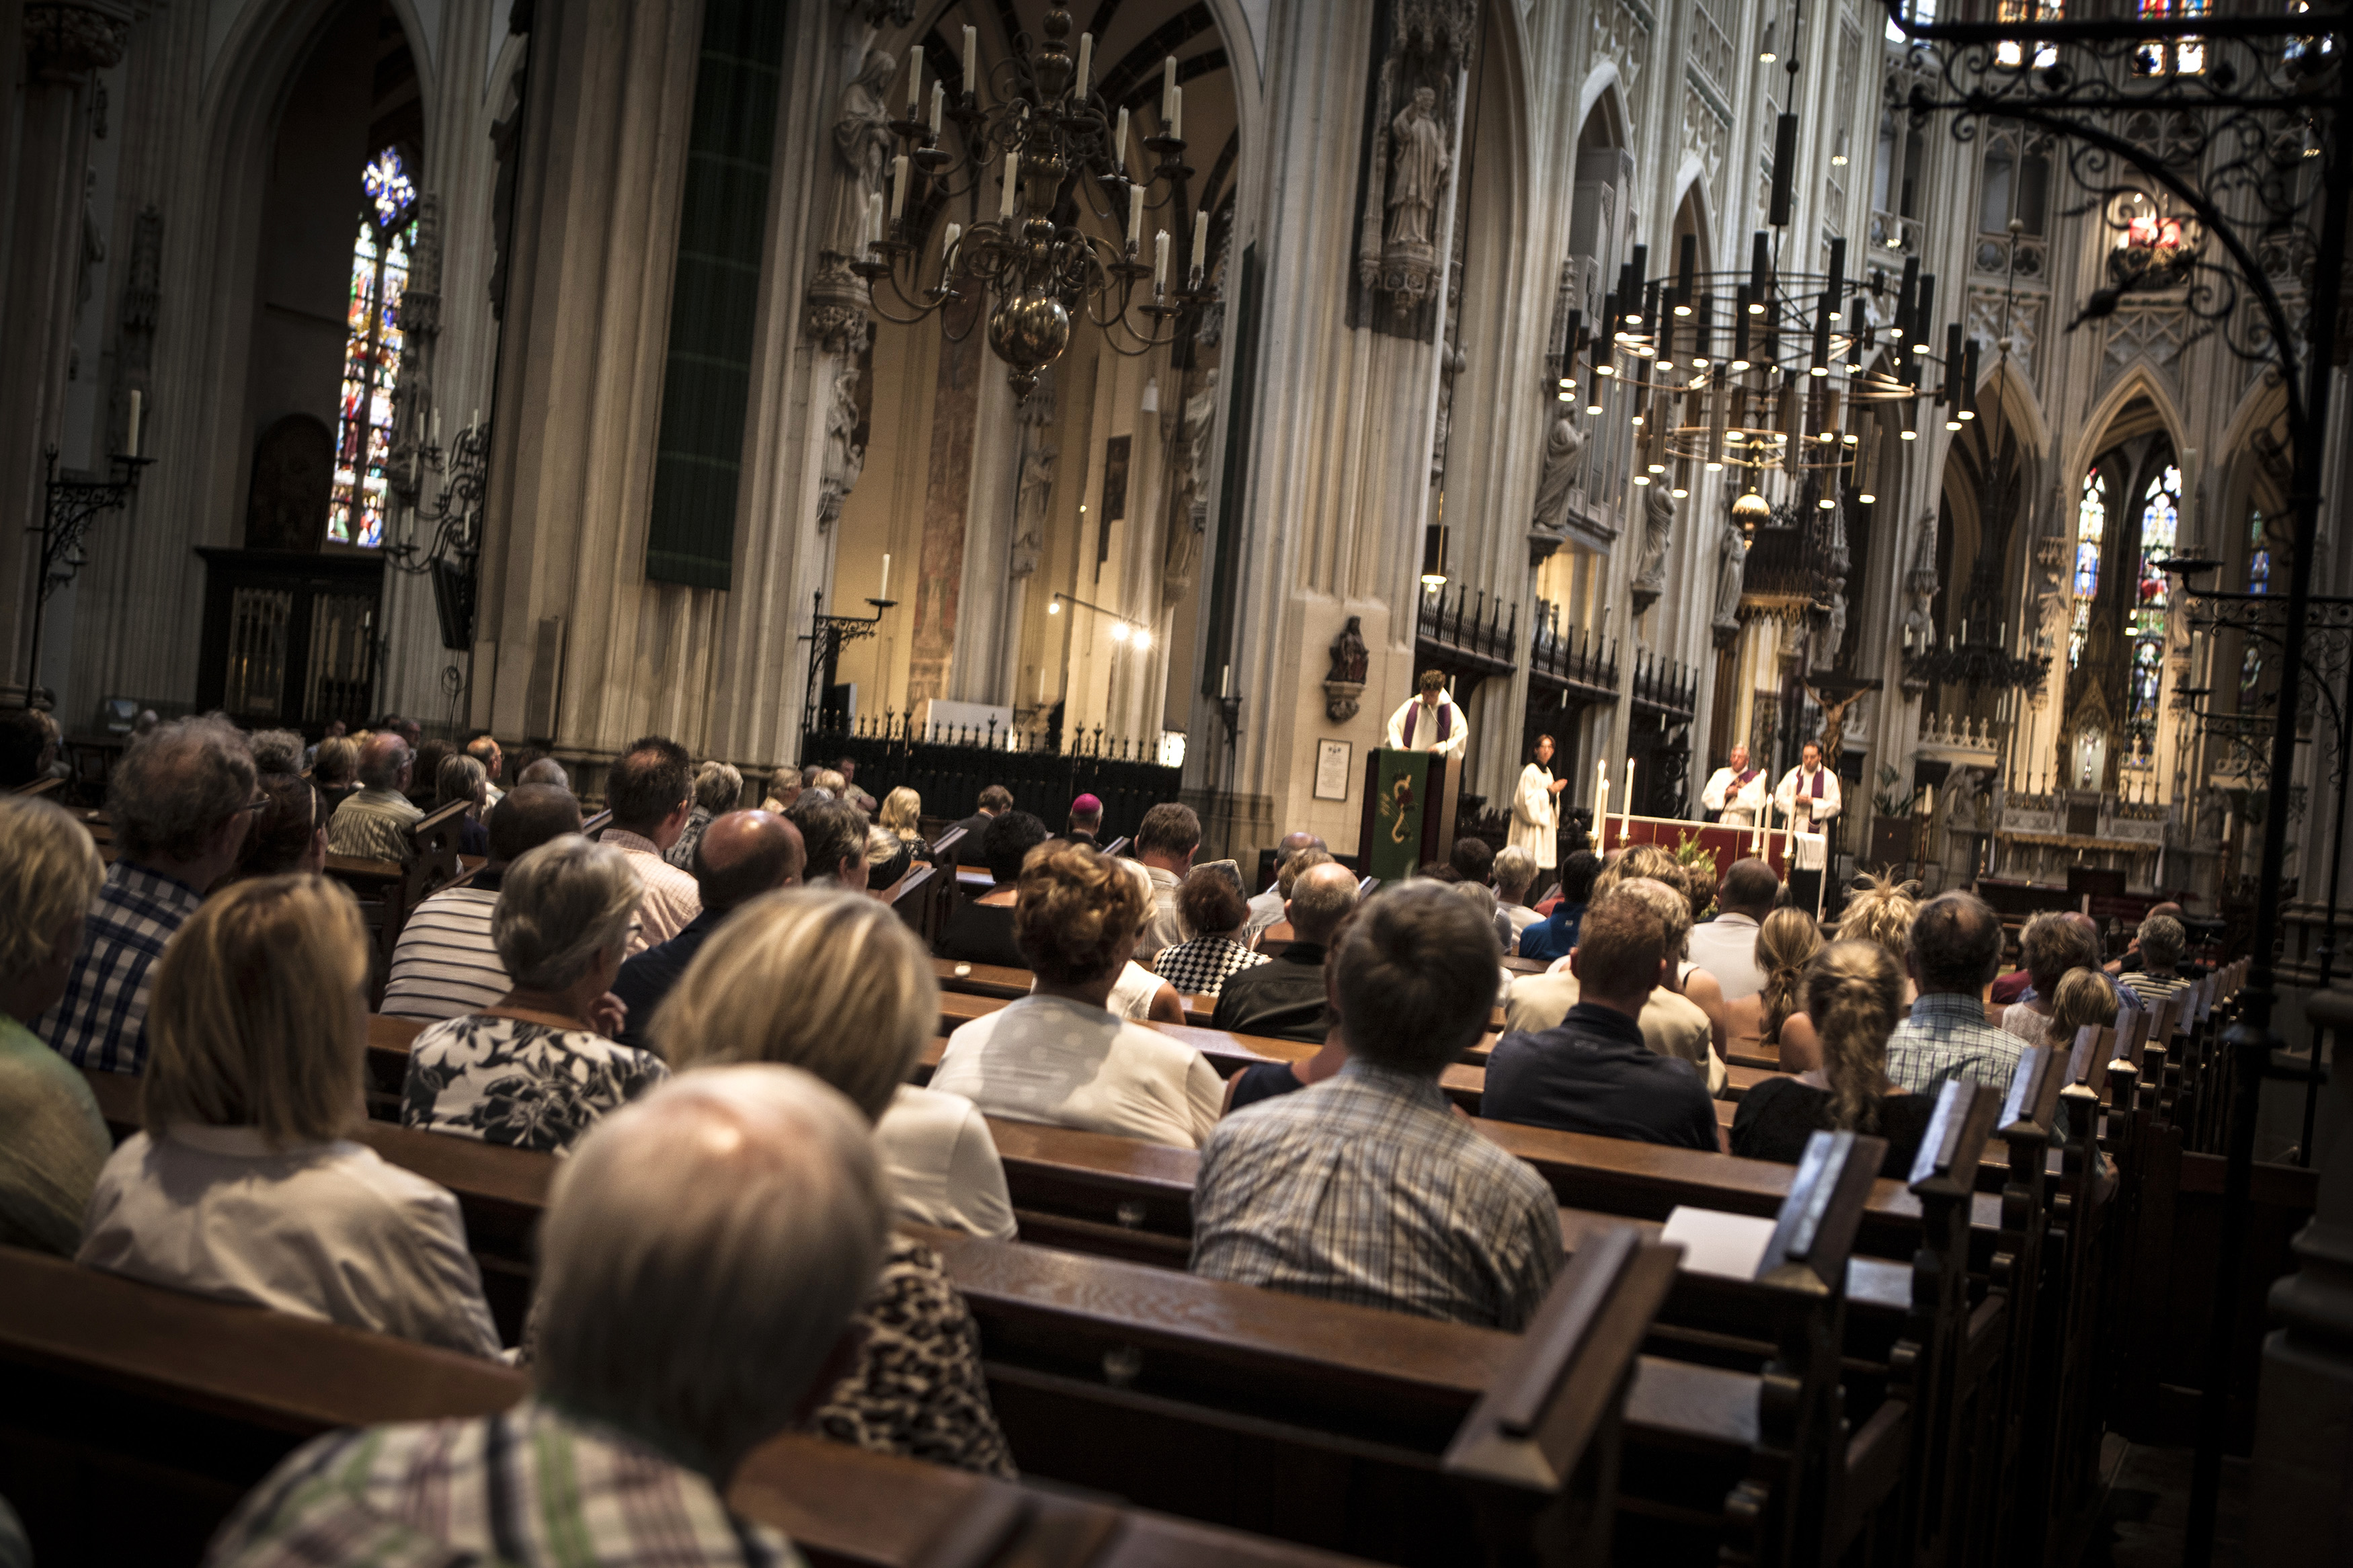 St. Jan Cathedral is filled with people attending the evening vigil for those who were killed in the Malaysia Airlines Flight MH17 plane crash, in Den Bosch, Netherlands, July 19, 2014.